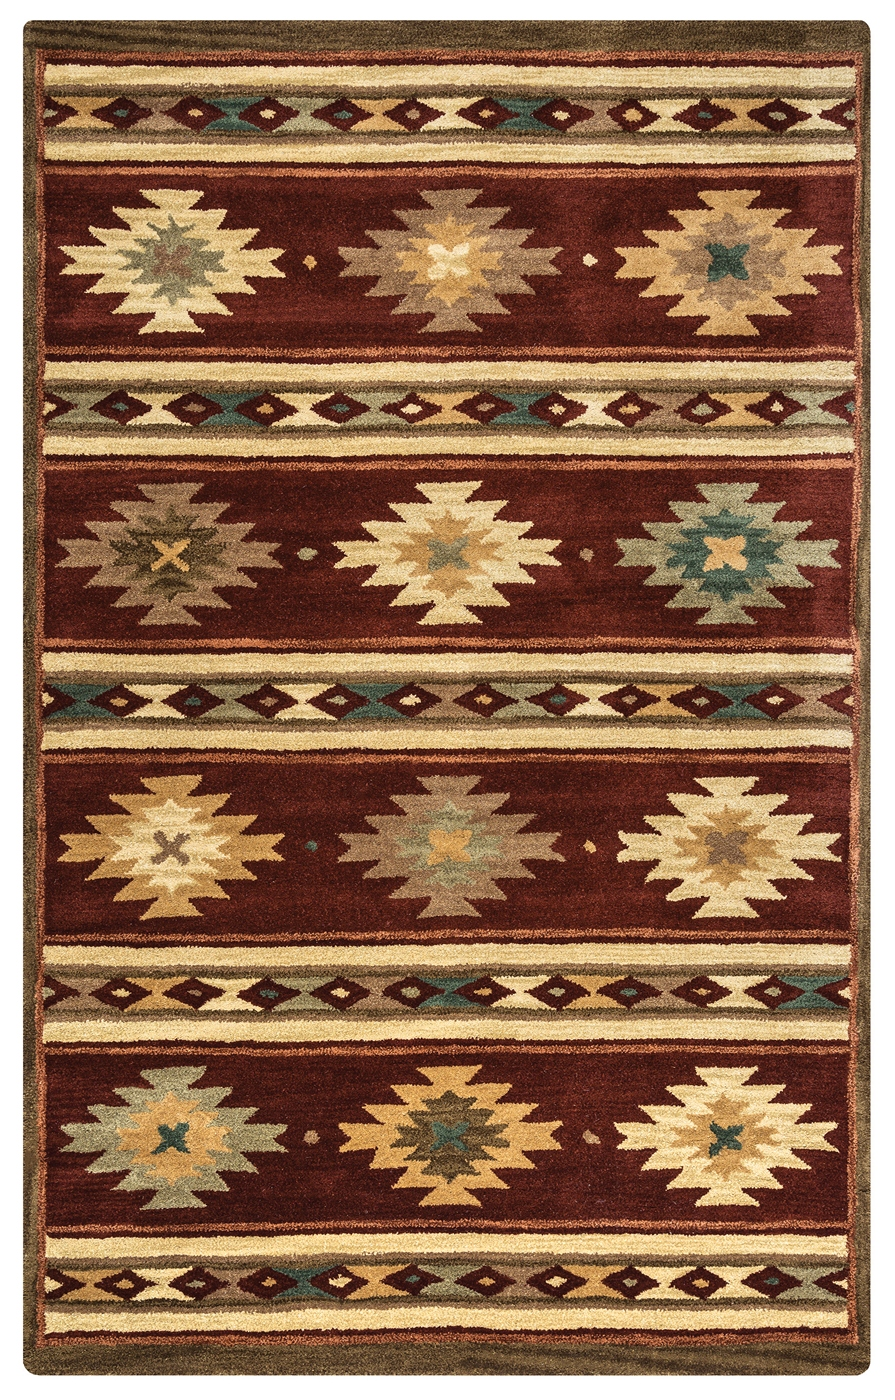 Southwest Tribal Ornamental Wool Area Rug In Red Tan Sage Teal 8 x 10